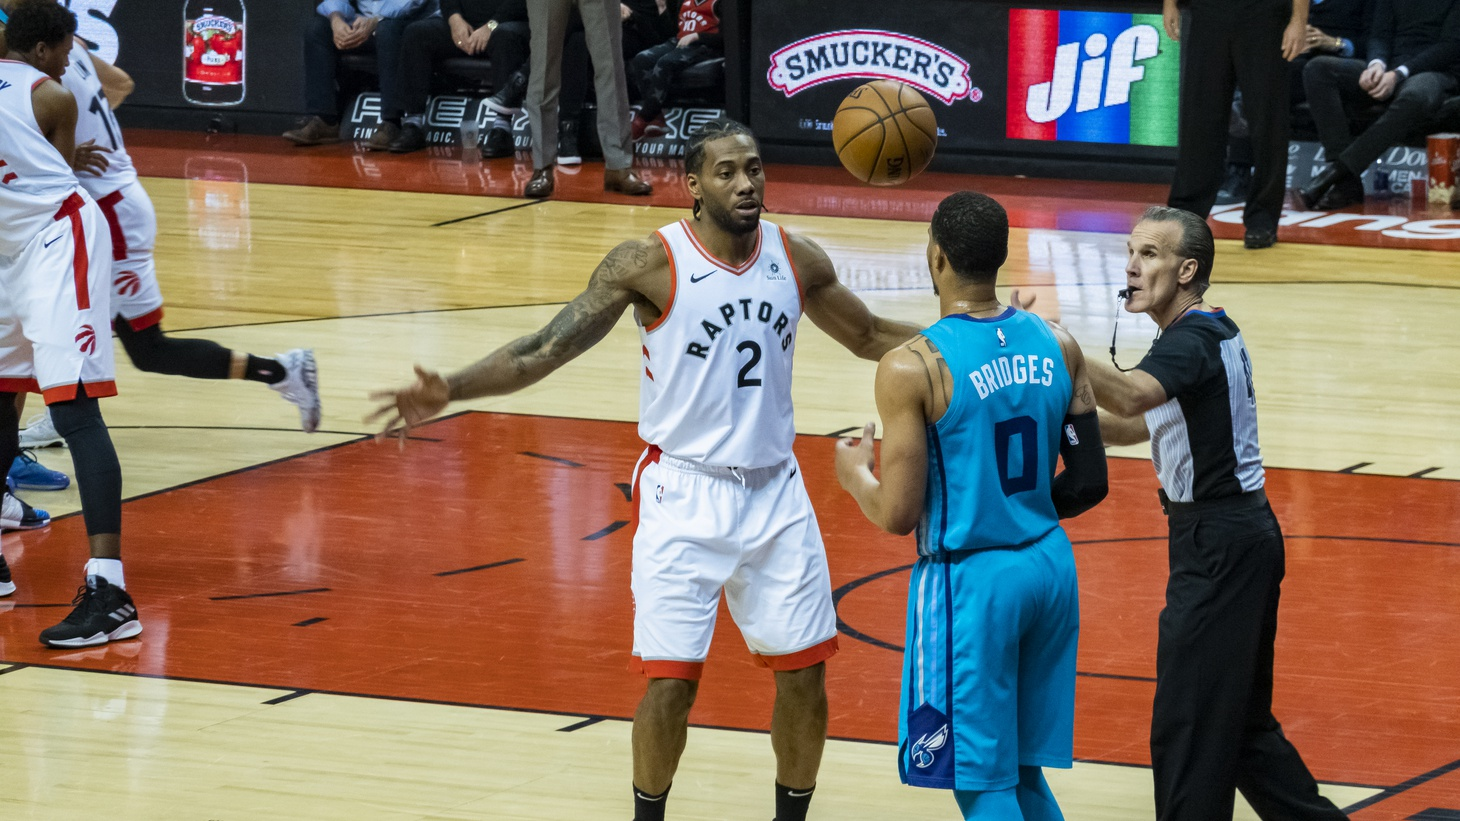 Kawhi Leonard playing for the Toronto Raptors against the Charlotte Hornets, March 2019.